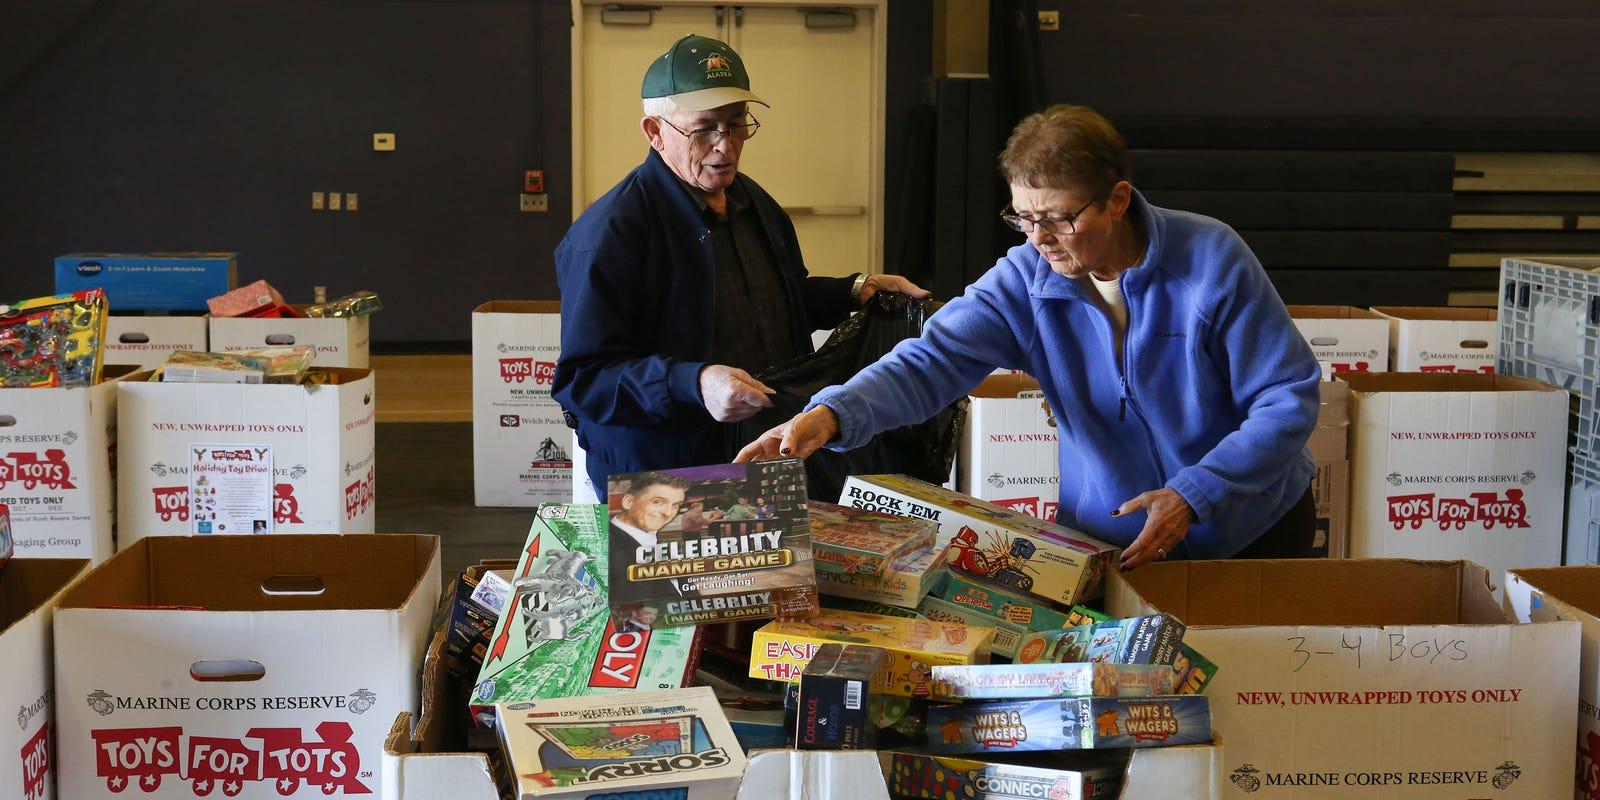 Twentynine Palms Marines collected 40,000 toys for kids